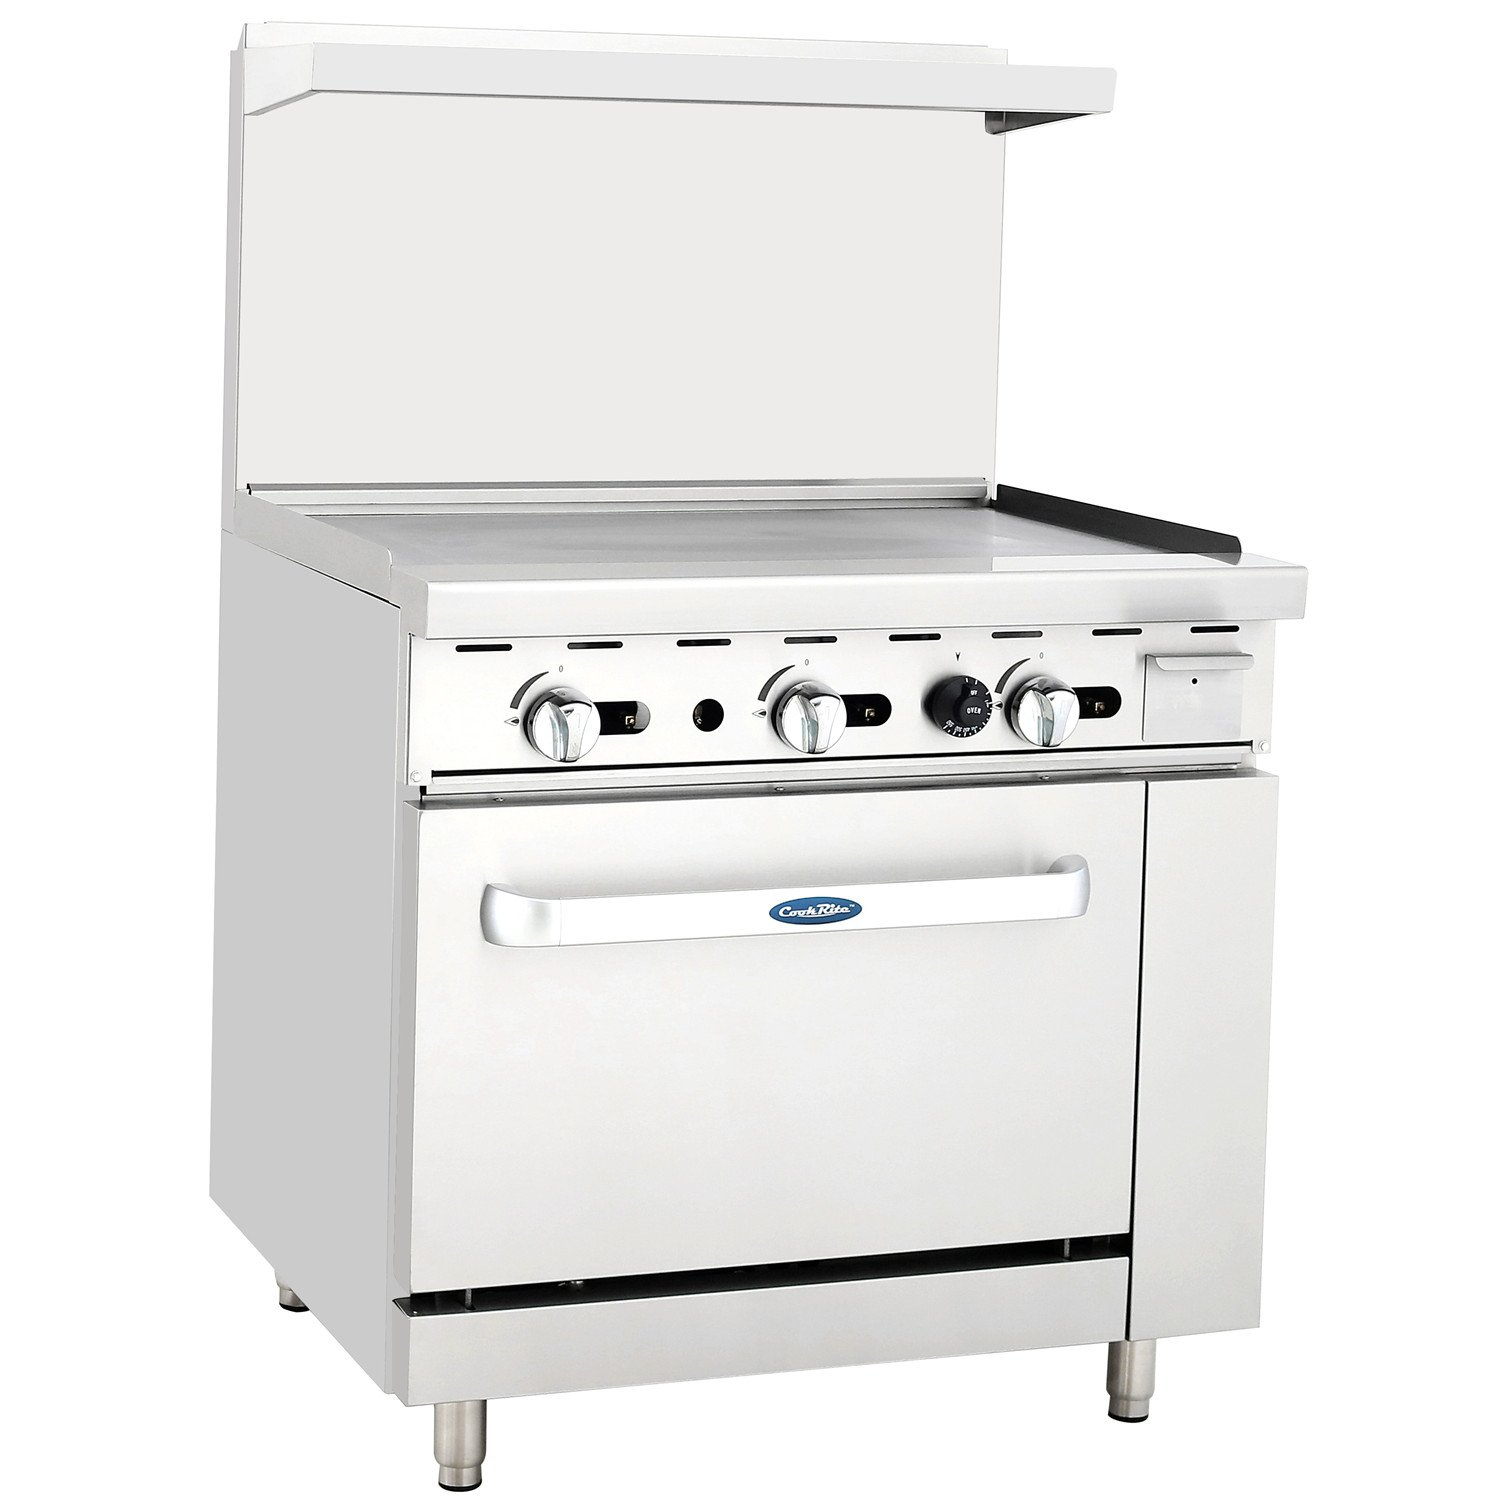 CookRite Commercial Restaurant Griddle With Propane Oven Cooks Standard Liquid Propane Range 36'' Stainless Steel - 102,000 BTU